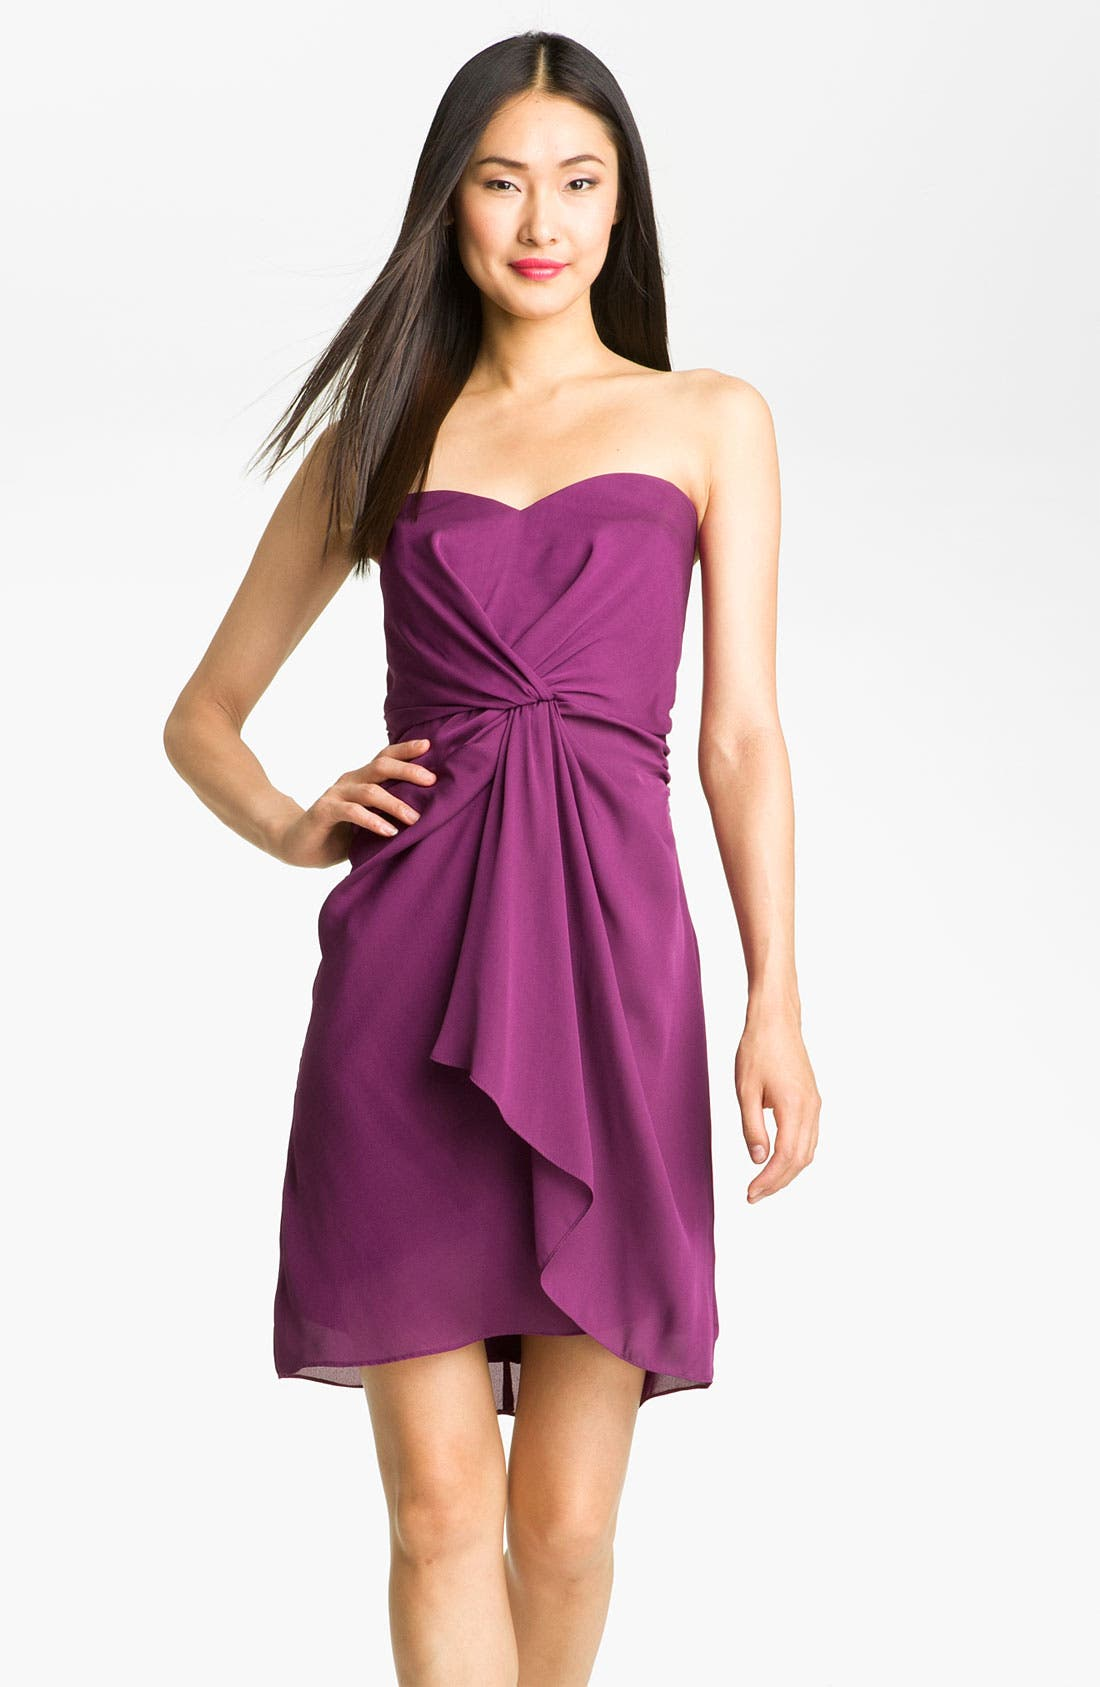 Alternate Image 1 Selected - Max & Cleo 'Jenna' Front Knot Strapless Chiffon Dress